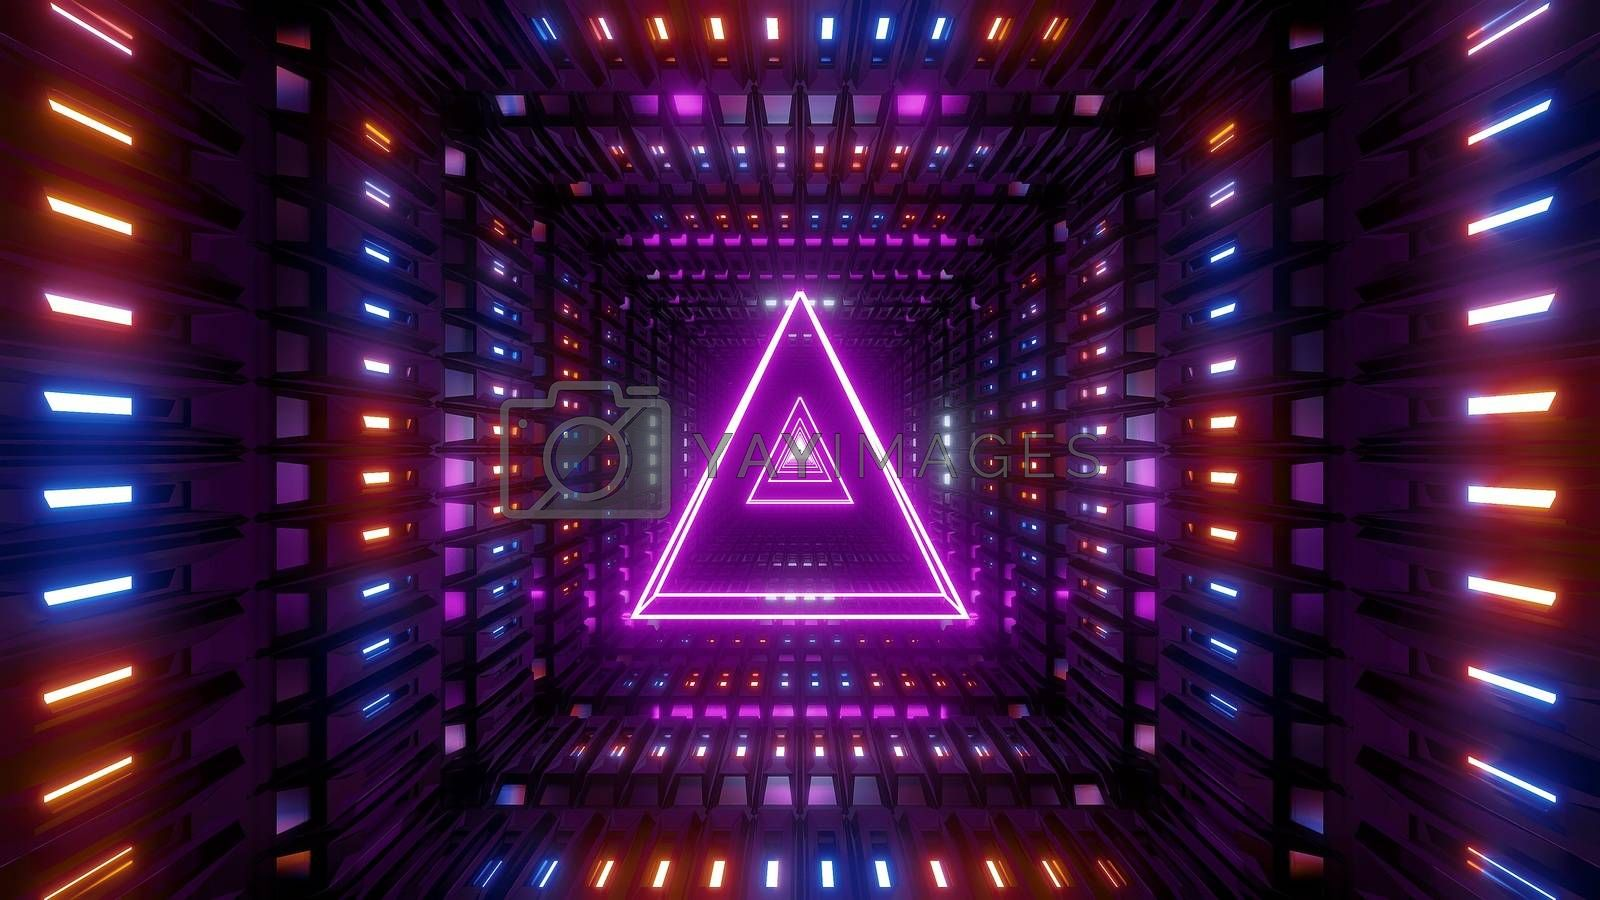 glowing wireframe triangle with metal shining background 3d illustration by tunnelmotions